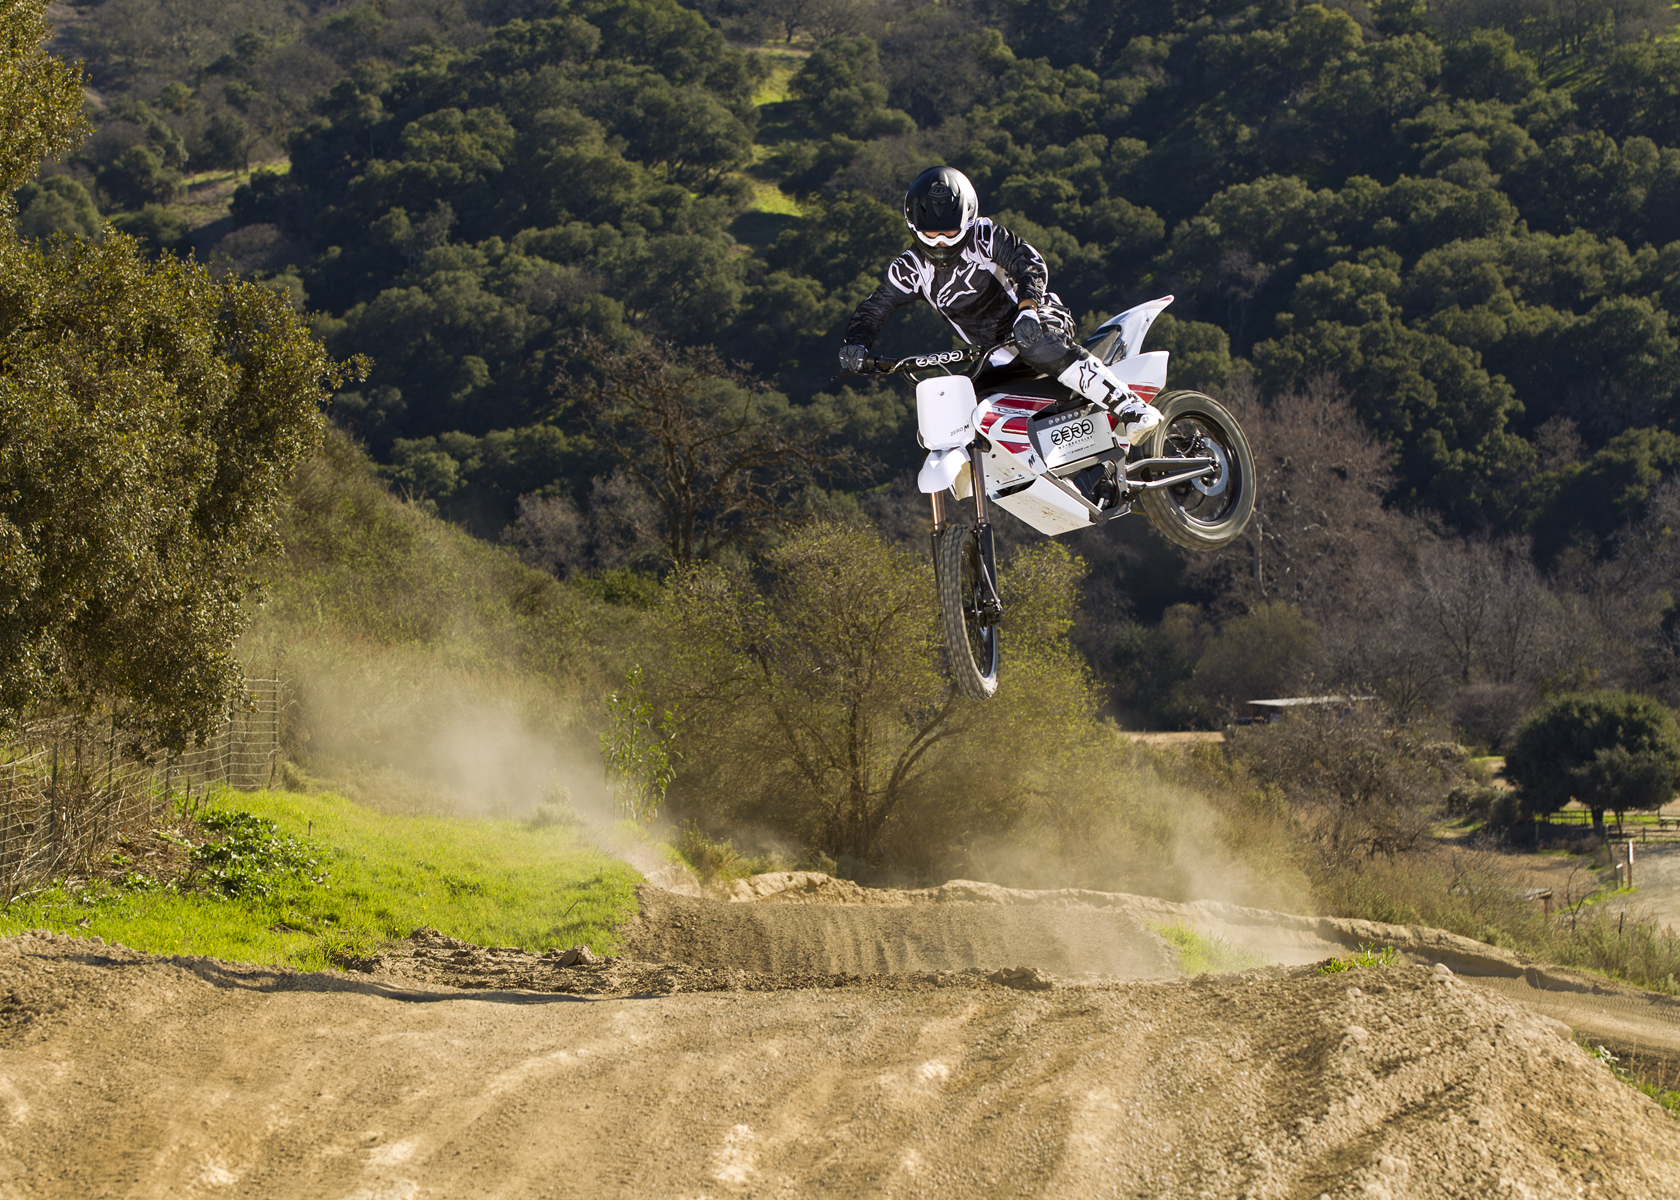 2011 Zero MX Electric Motorcycle: High Jump on Track